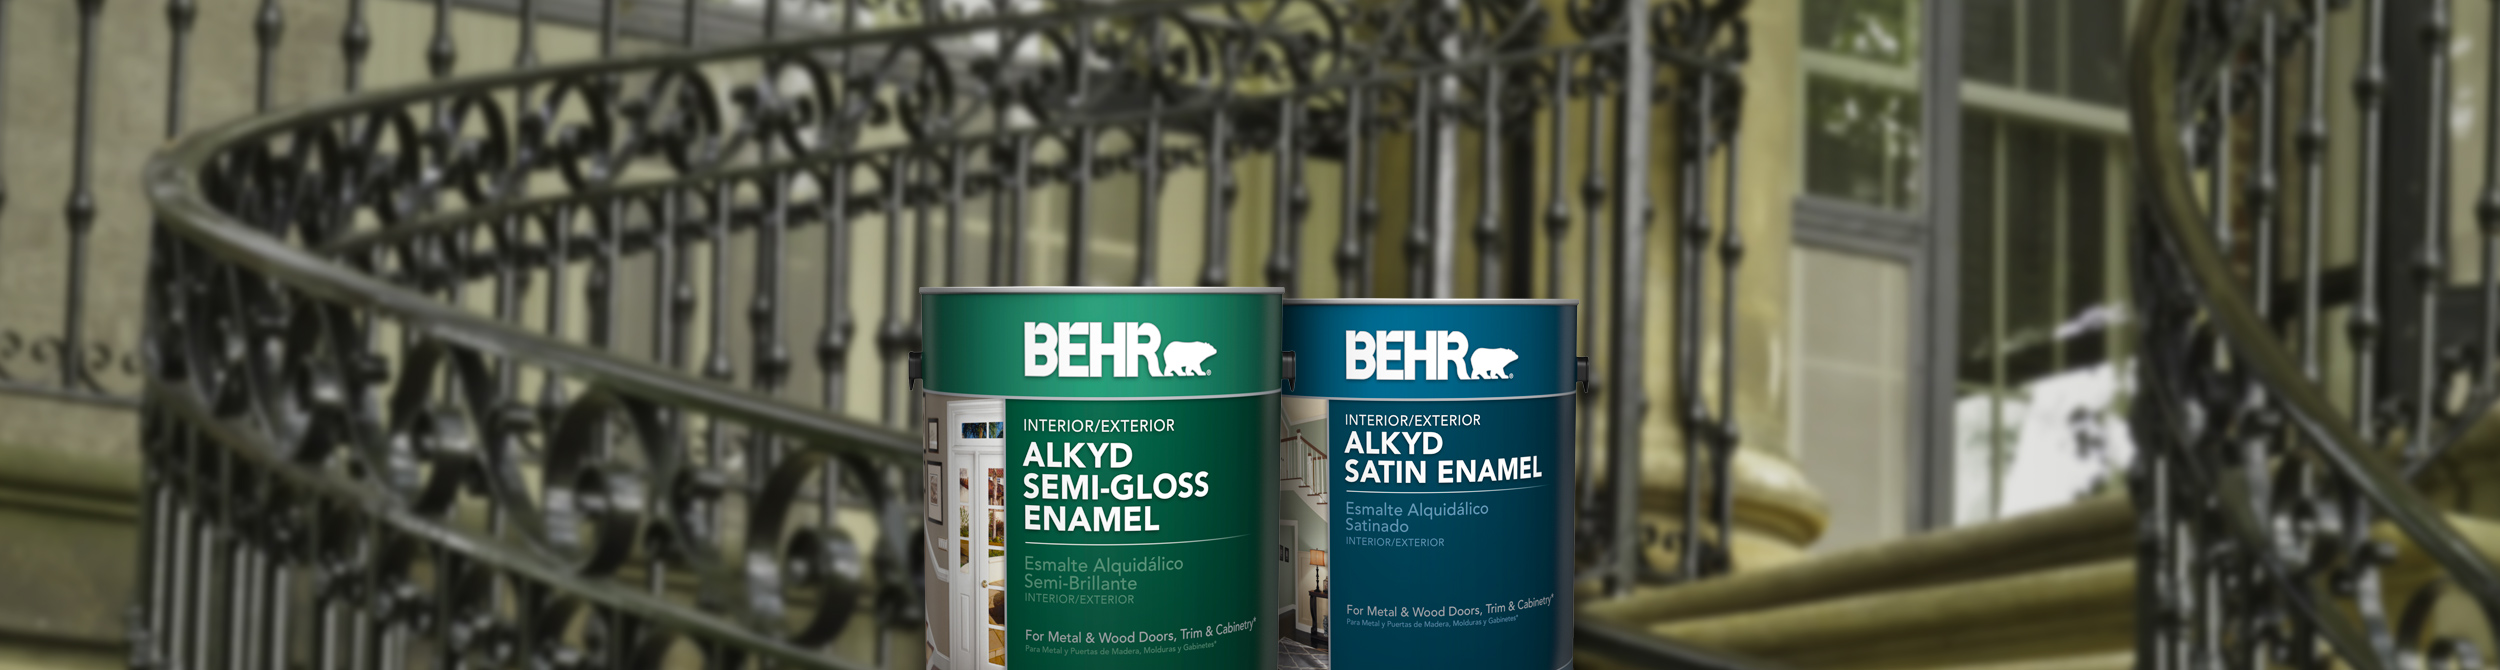 Two cans of Behr paint with metal railed stairs in the background